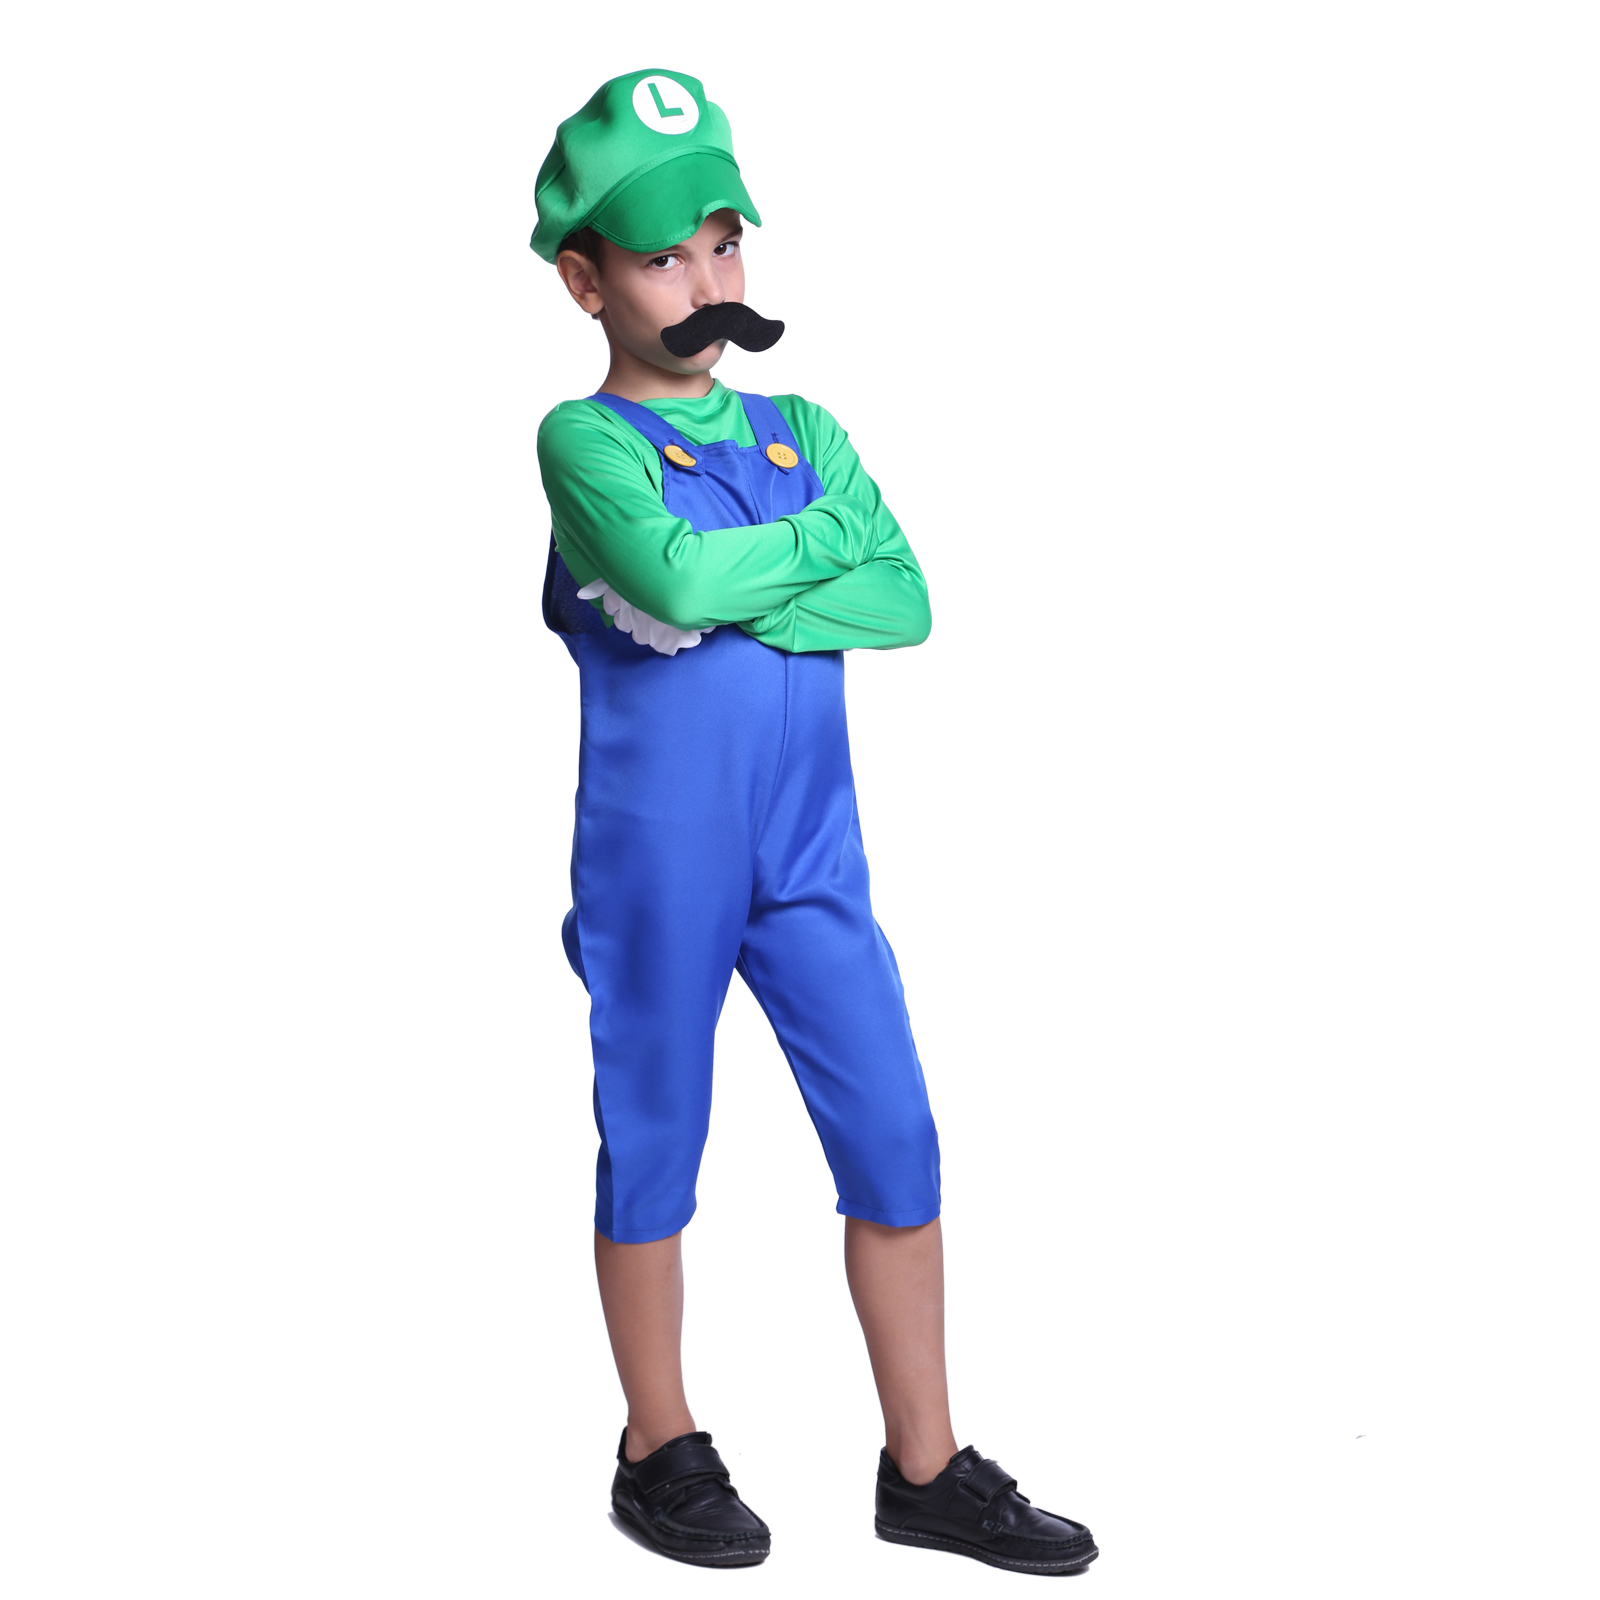 super mario luigi klempner kost m f r damen herren kinder halloween fasching ebay. Black Bedroom Furniture Sets. Home Design Ideas